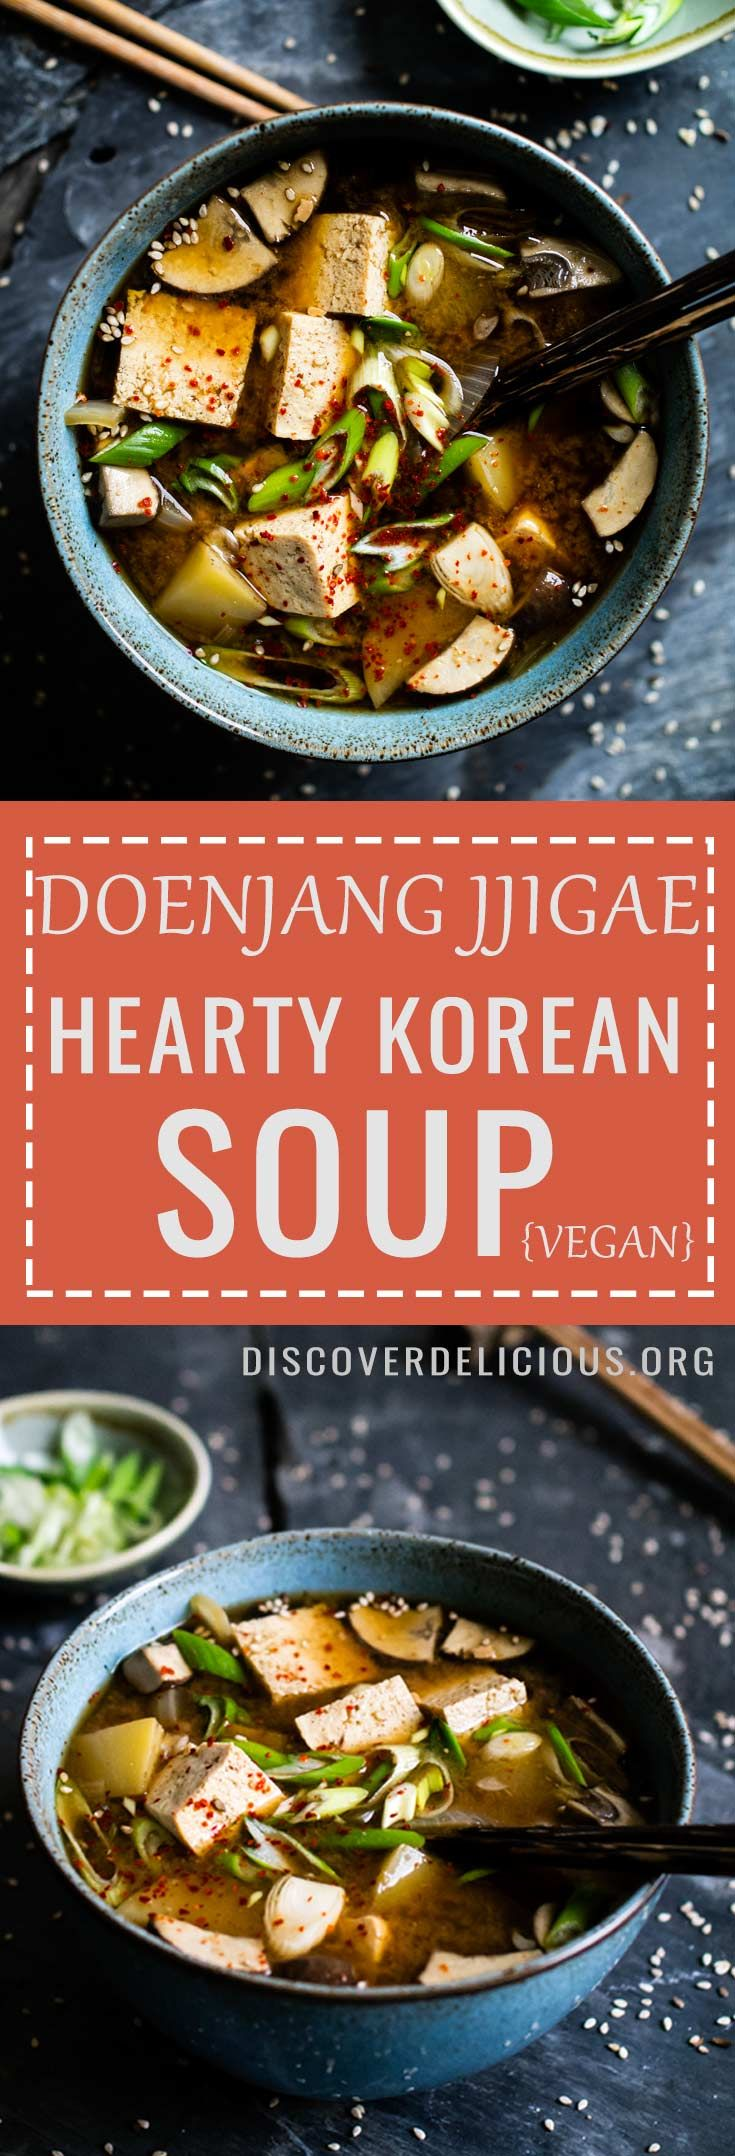 Doenjang Jjigae (hearty Korean soup). Popular Korean comfort food + vegan! Quick and easy to make.   Discover Delicious  www.discoverdelicious.org